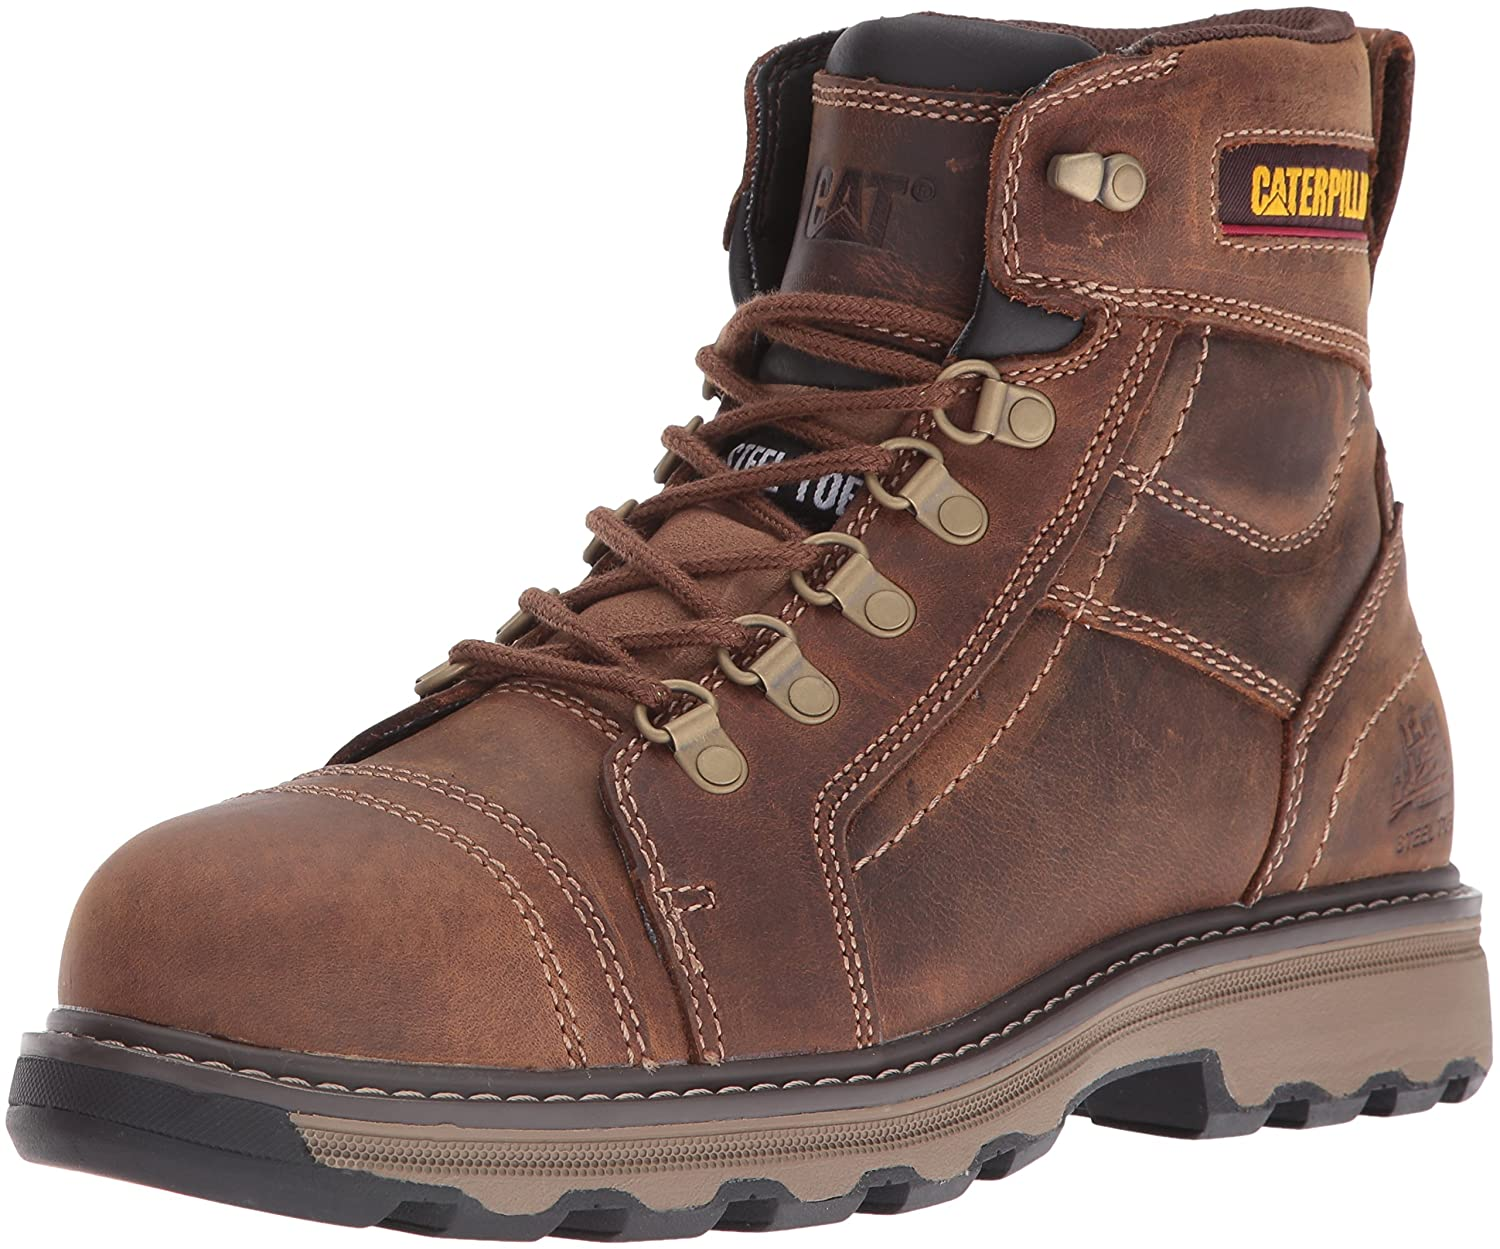 Frank Boys Suede Effect Tu Brown Casual Boots Size Uk 4 Junior Kids' Clothing, Shoes & Accs Easy To Repair Clothing, Shoes & Accessories